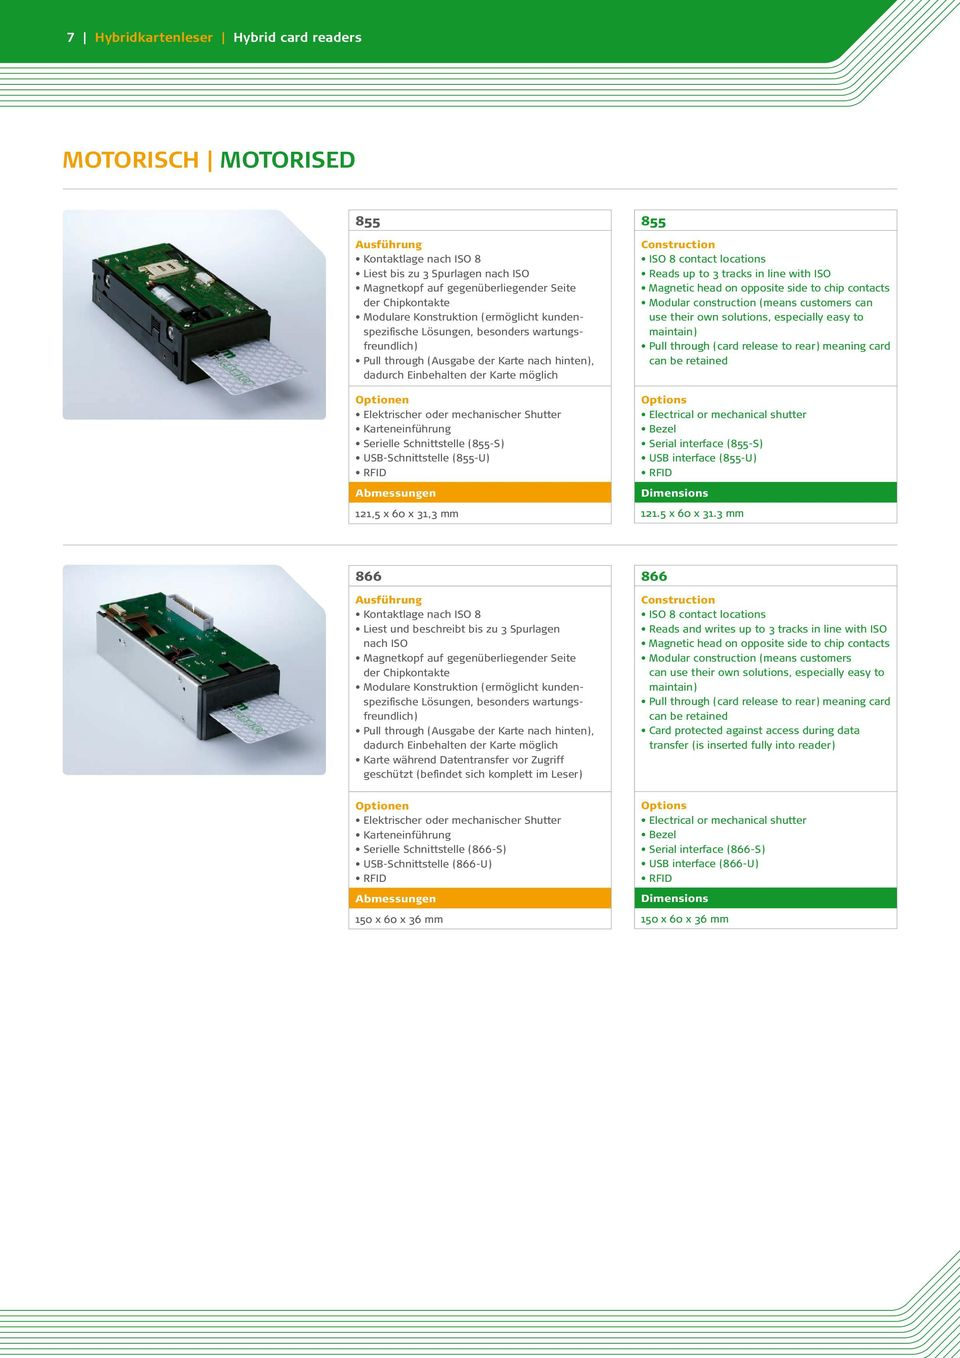 Serielle Schnittstelle (855-S) USB-Schnittstelle (855-U) RFID 121,5 x 60 x 31,3 mm 855 Reads up to 3 tracks in line with ISO Magnetic head on opposite side to chip contacts Modular construction